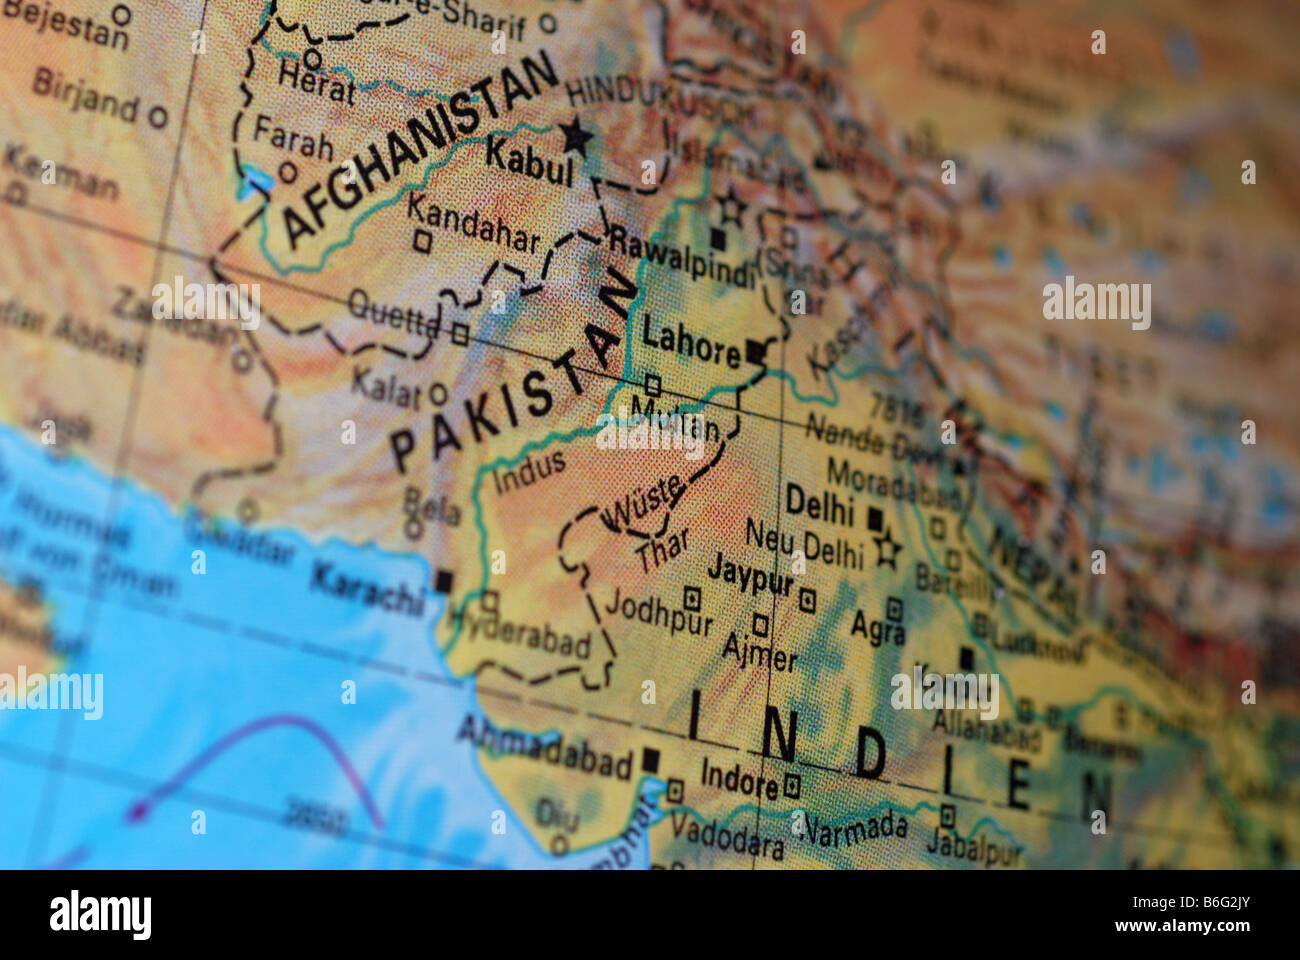 Globe Afghanistan and Pakistan and India - Stock Image